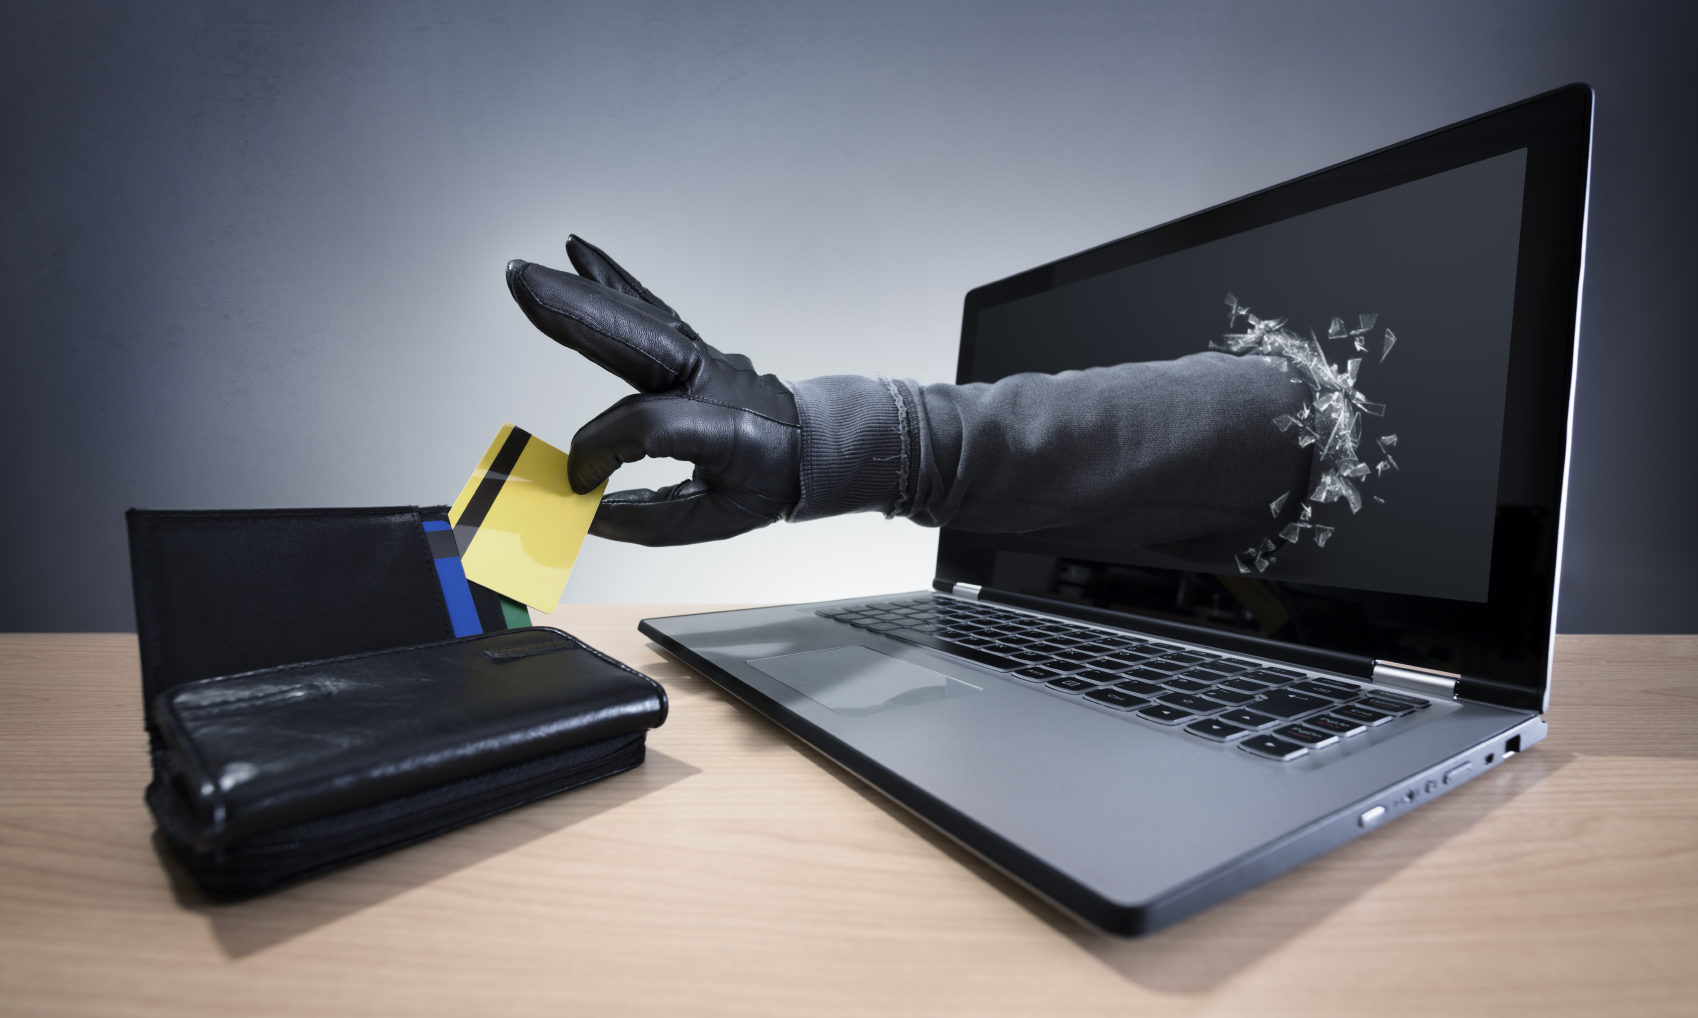 Online scammers can steal details